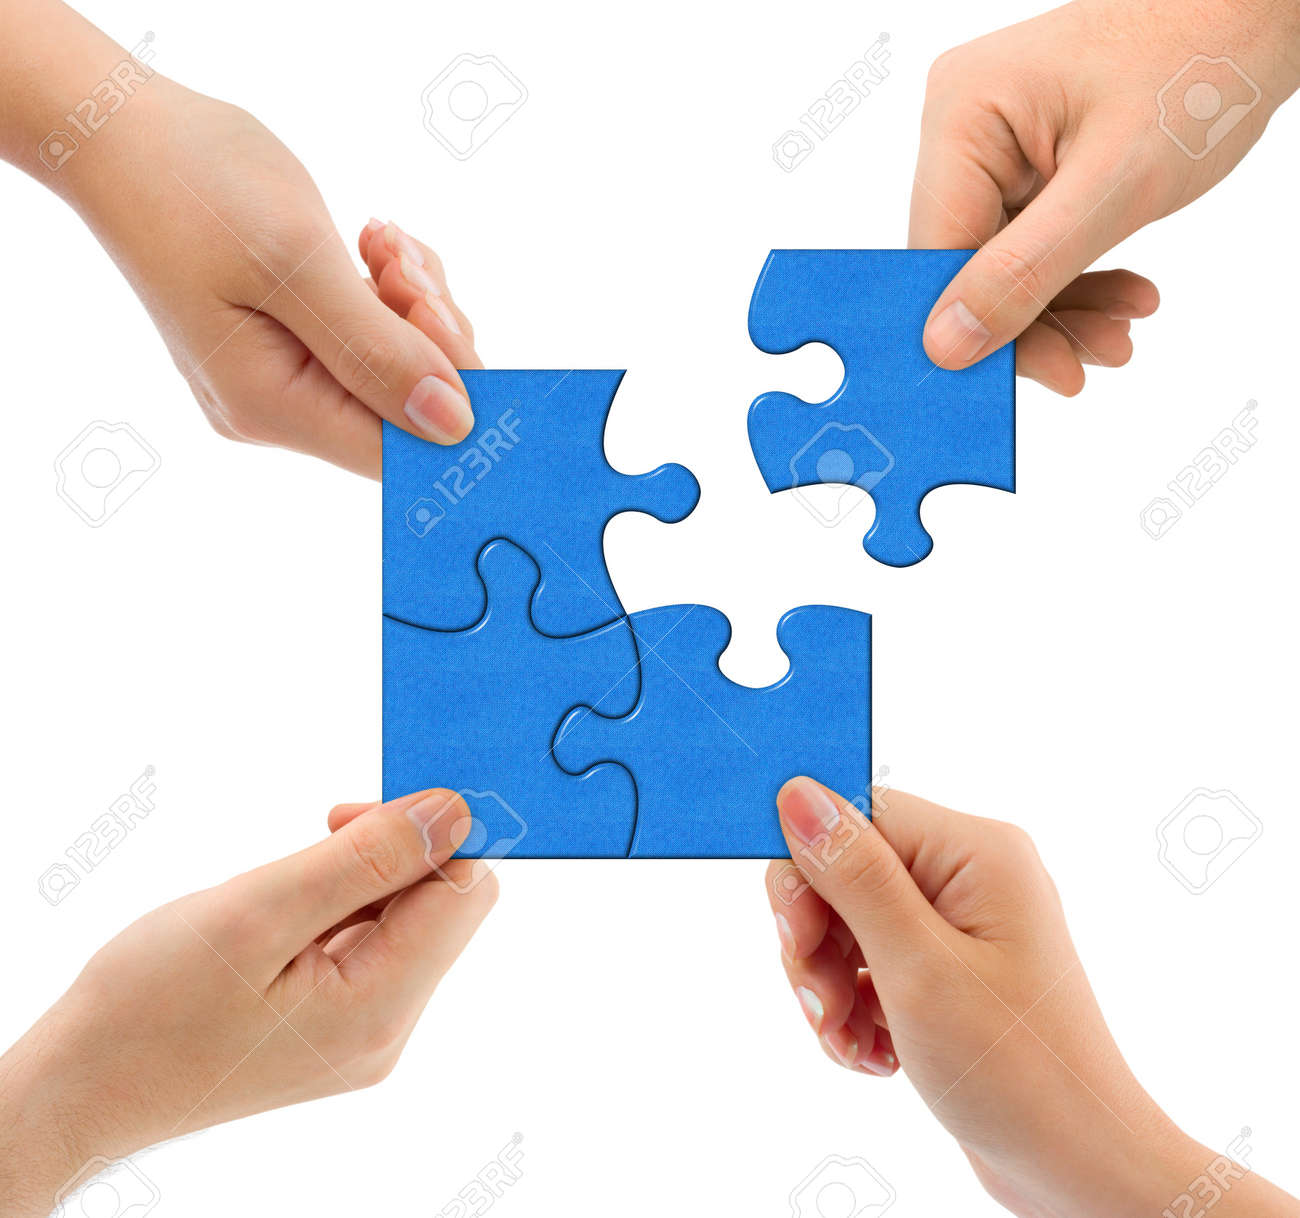 Hands and puzzle isolated on white background Stock Photo - 12003528